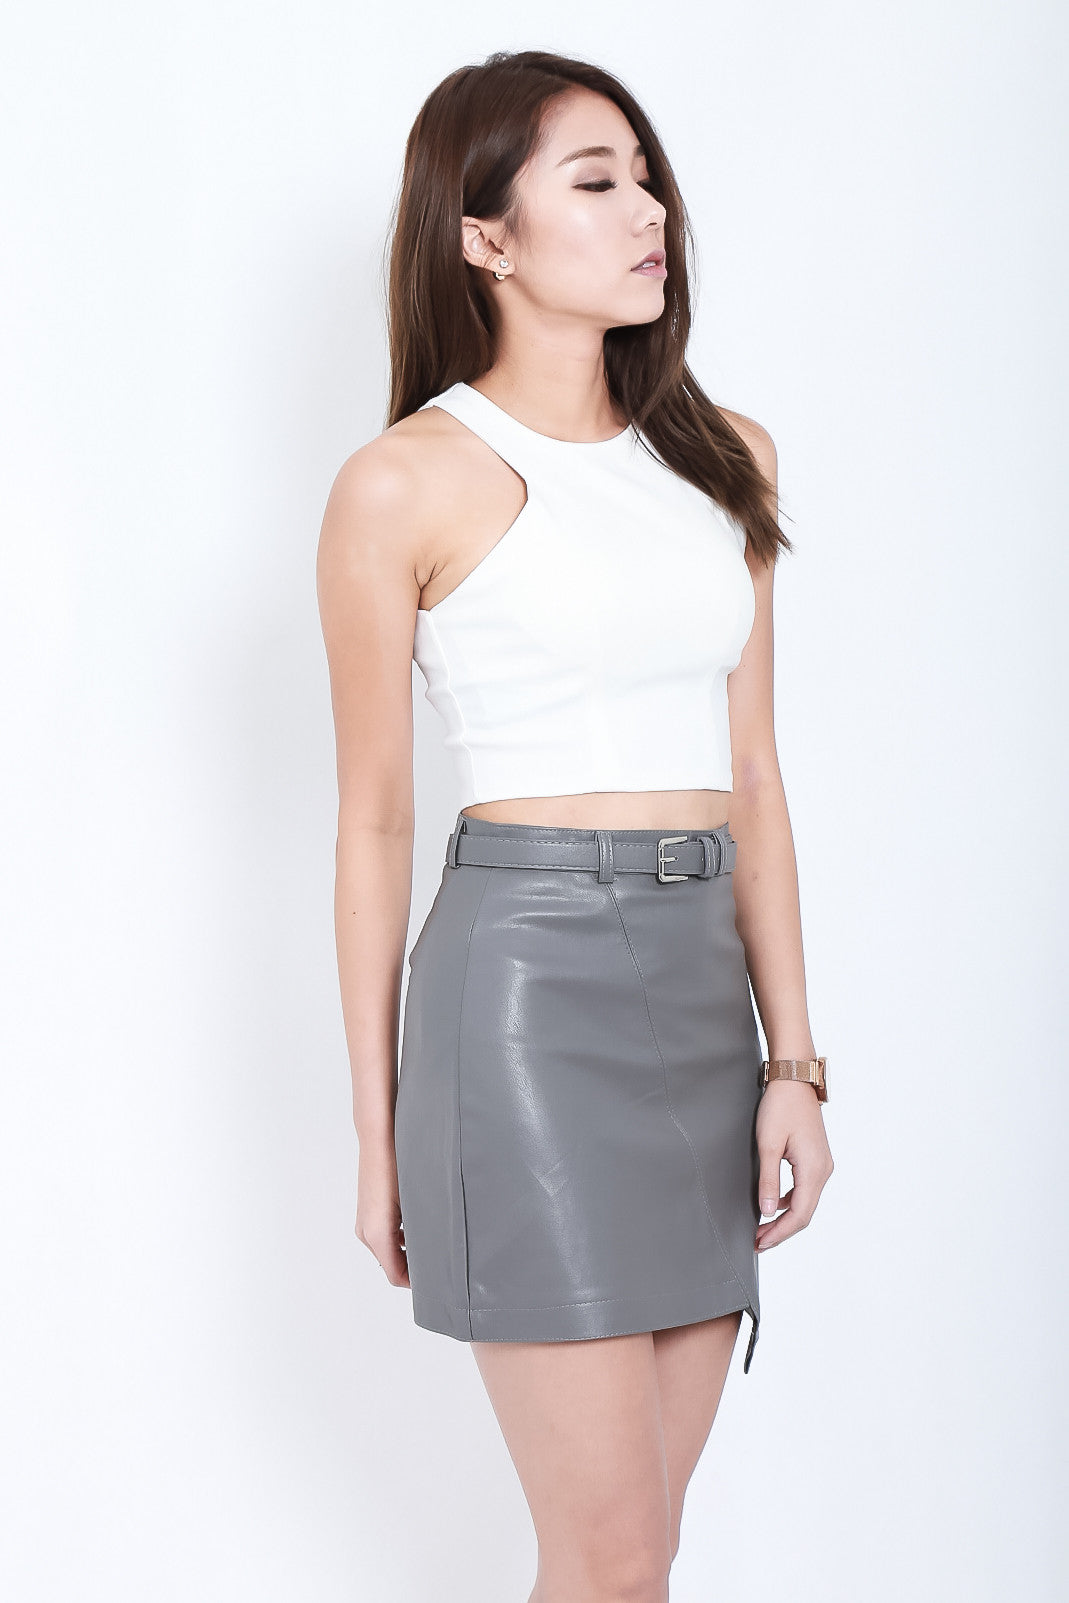 (RESTOCKED) THE ESSENTIAL CROP TOP IN WHITE - TOPAZETTE